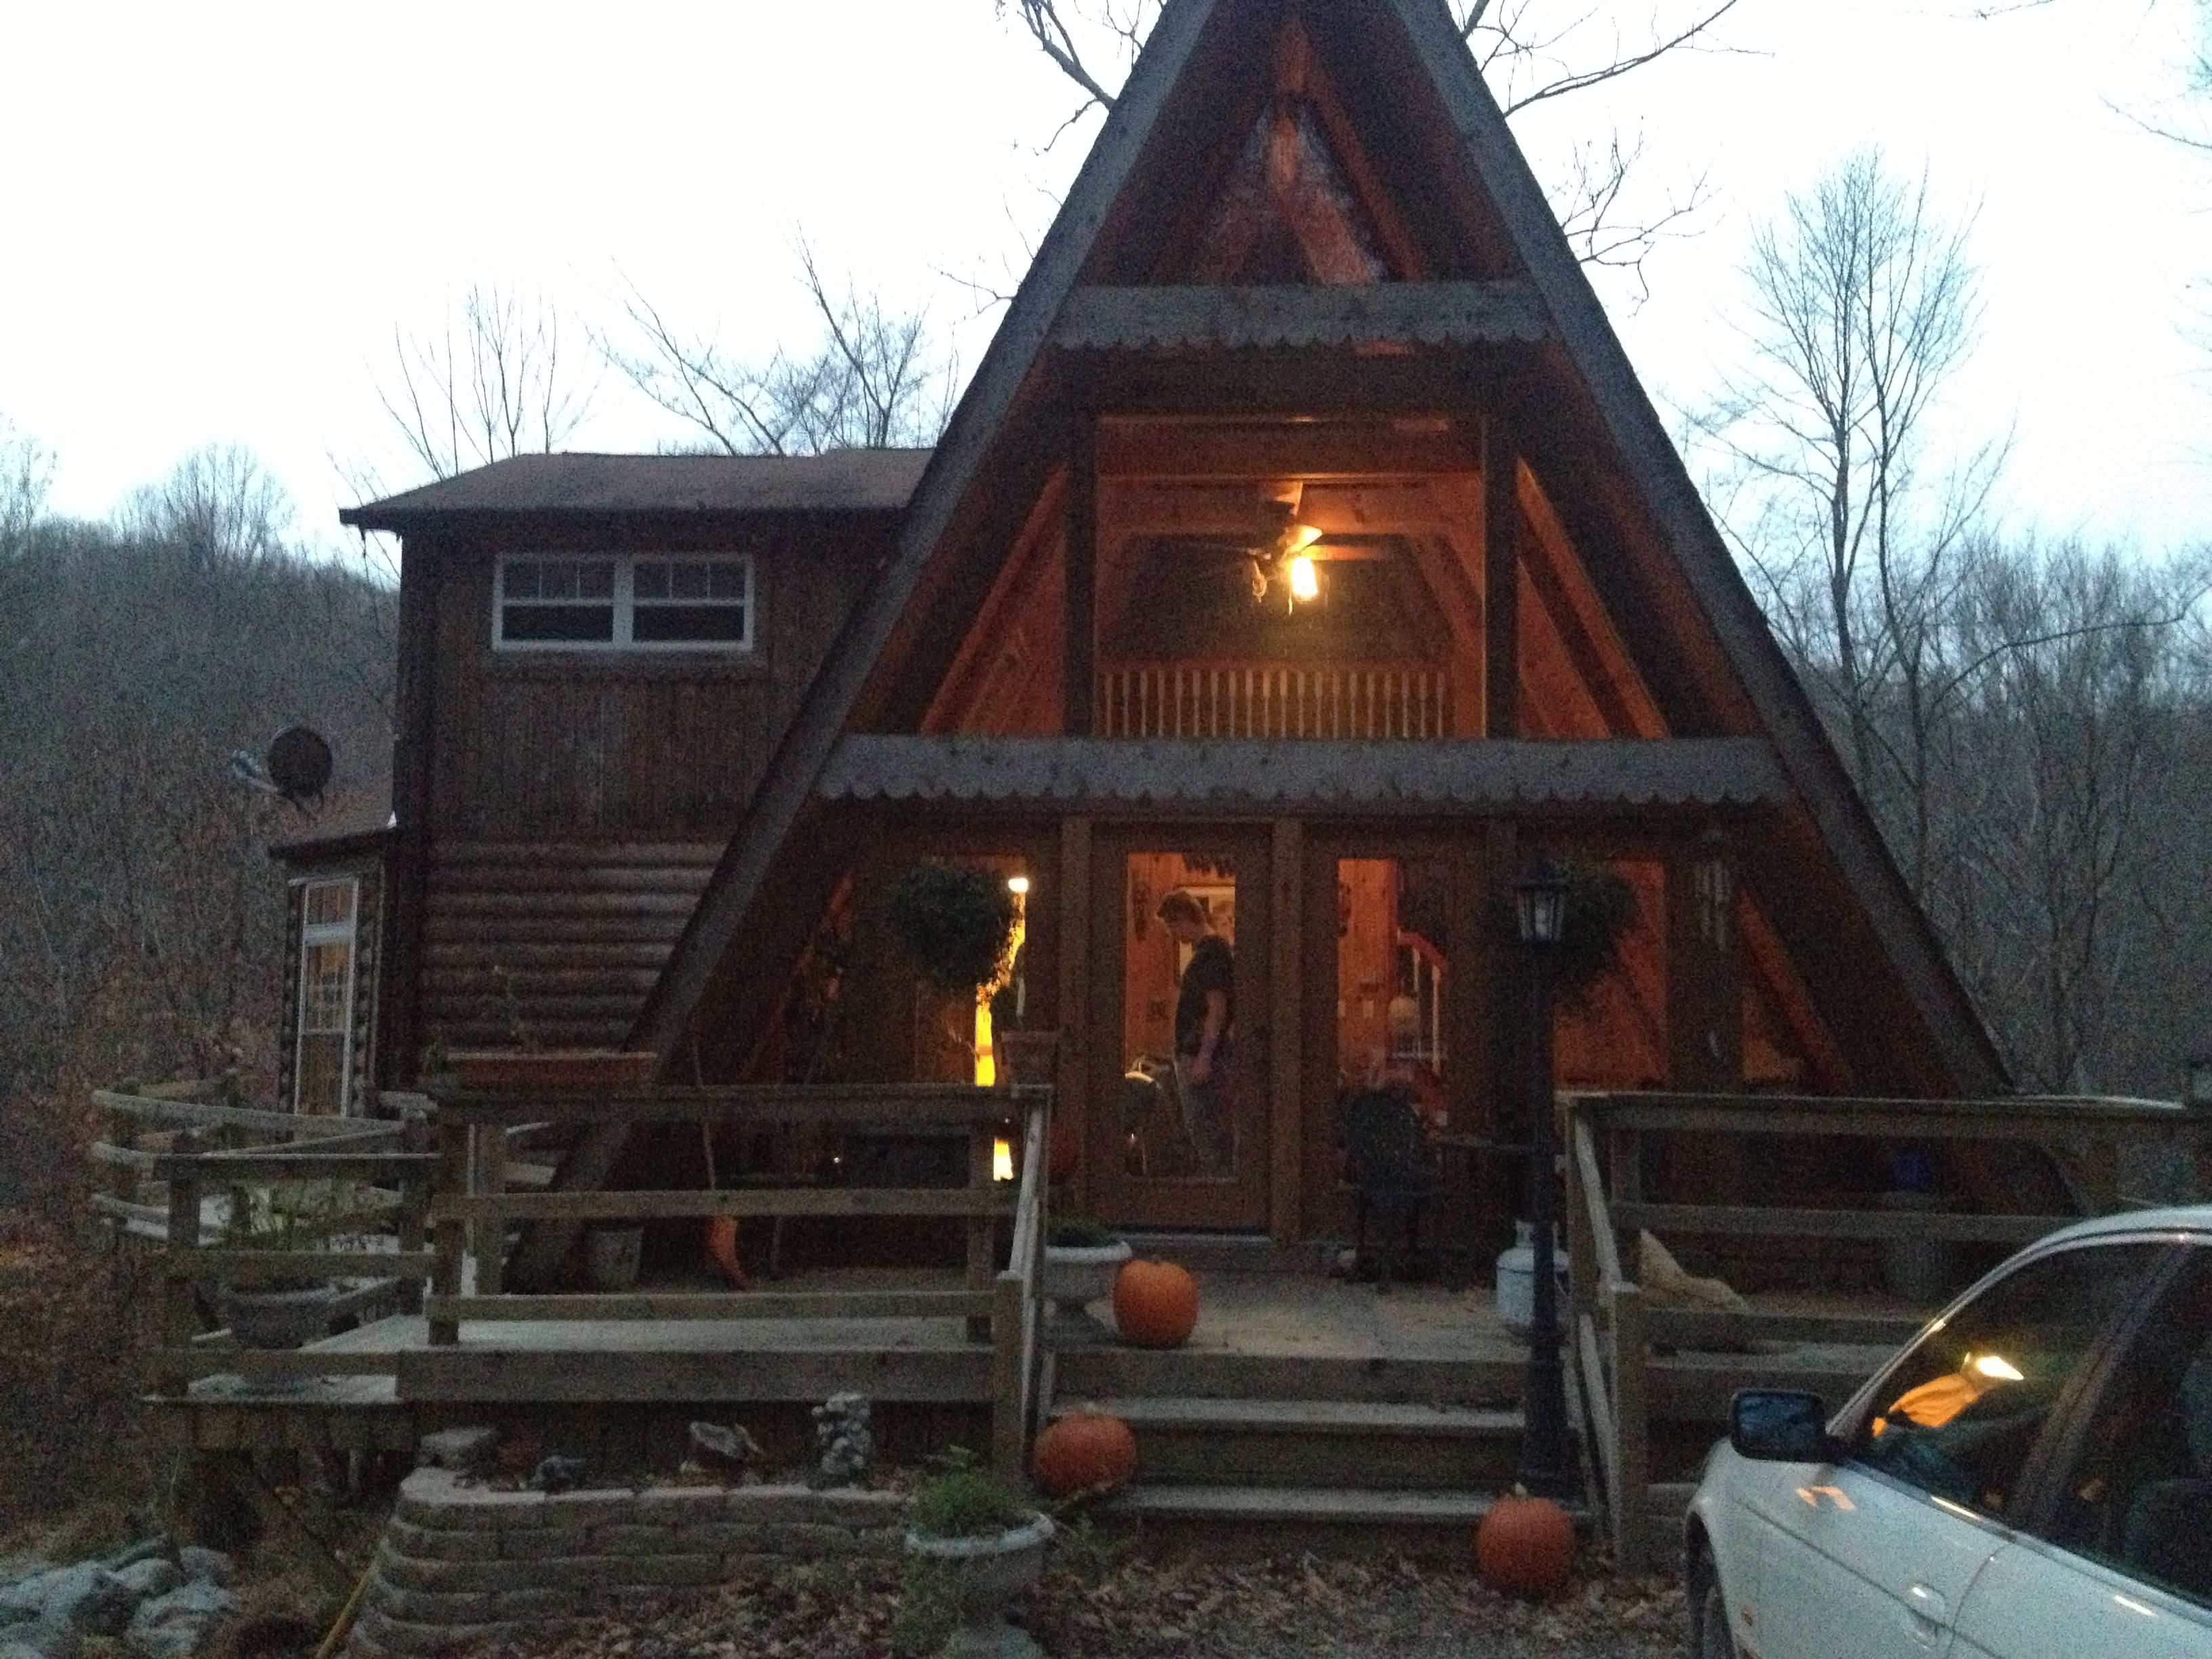 A Frame Cabin In Ohio The Gorgeous House Where My Roommate S Mother Lives This Is Basically My Dream Home A Frame House Beautiful Cabins House Design